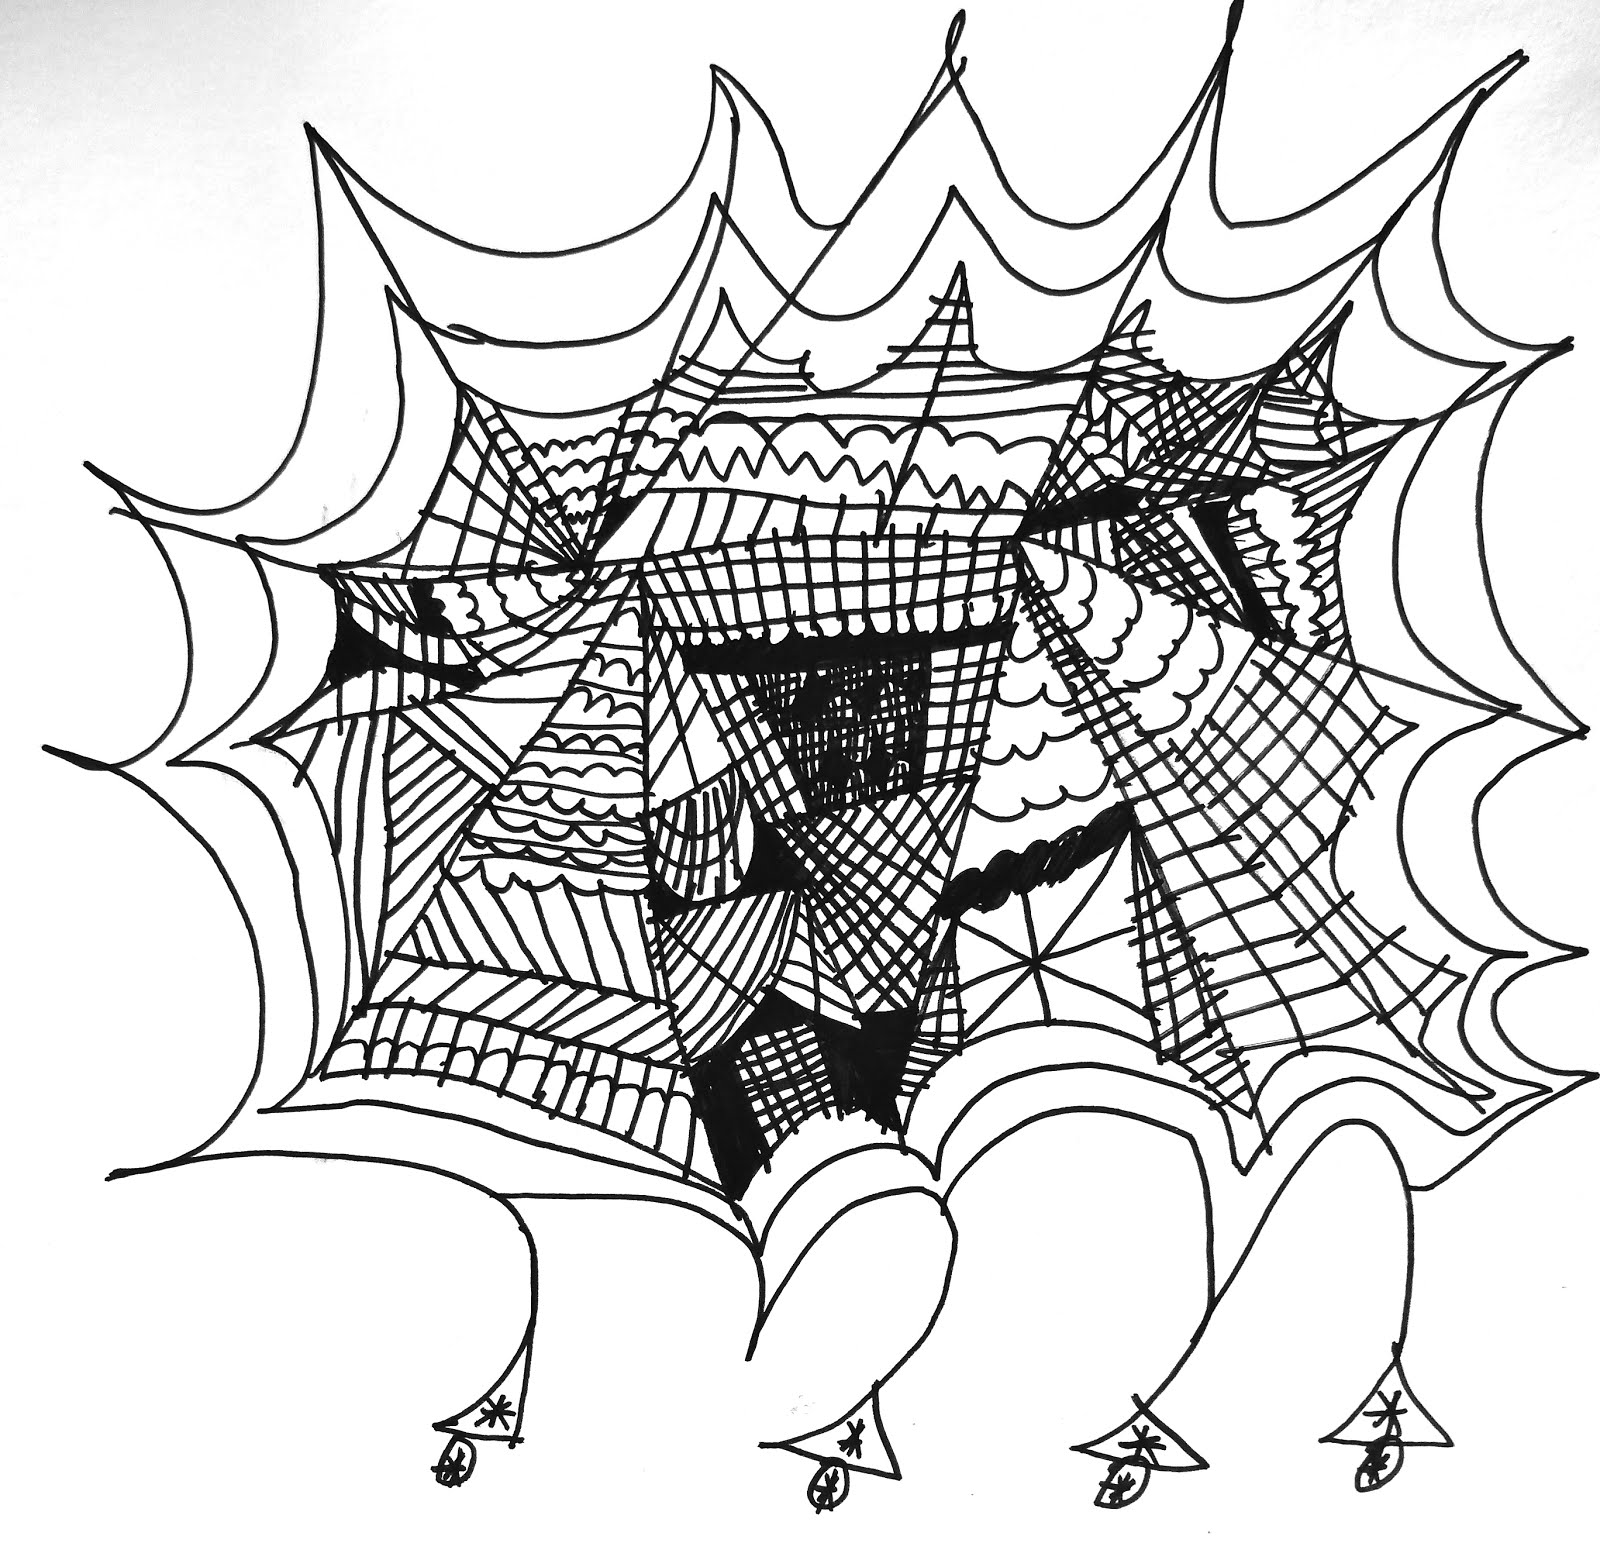 anansi the spider coloring pages - rl arts anansi the spider